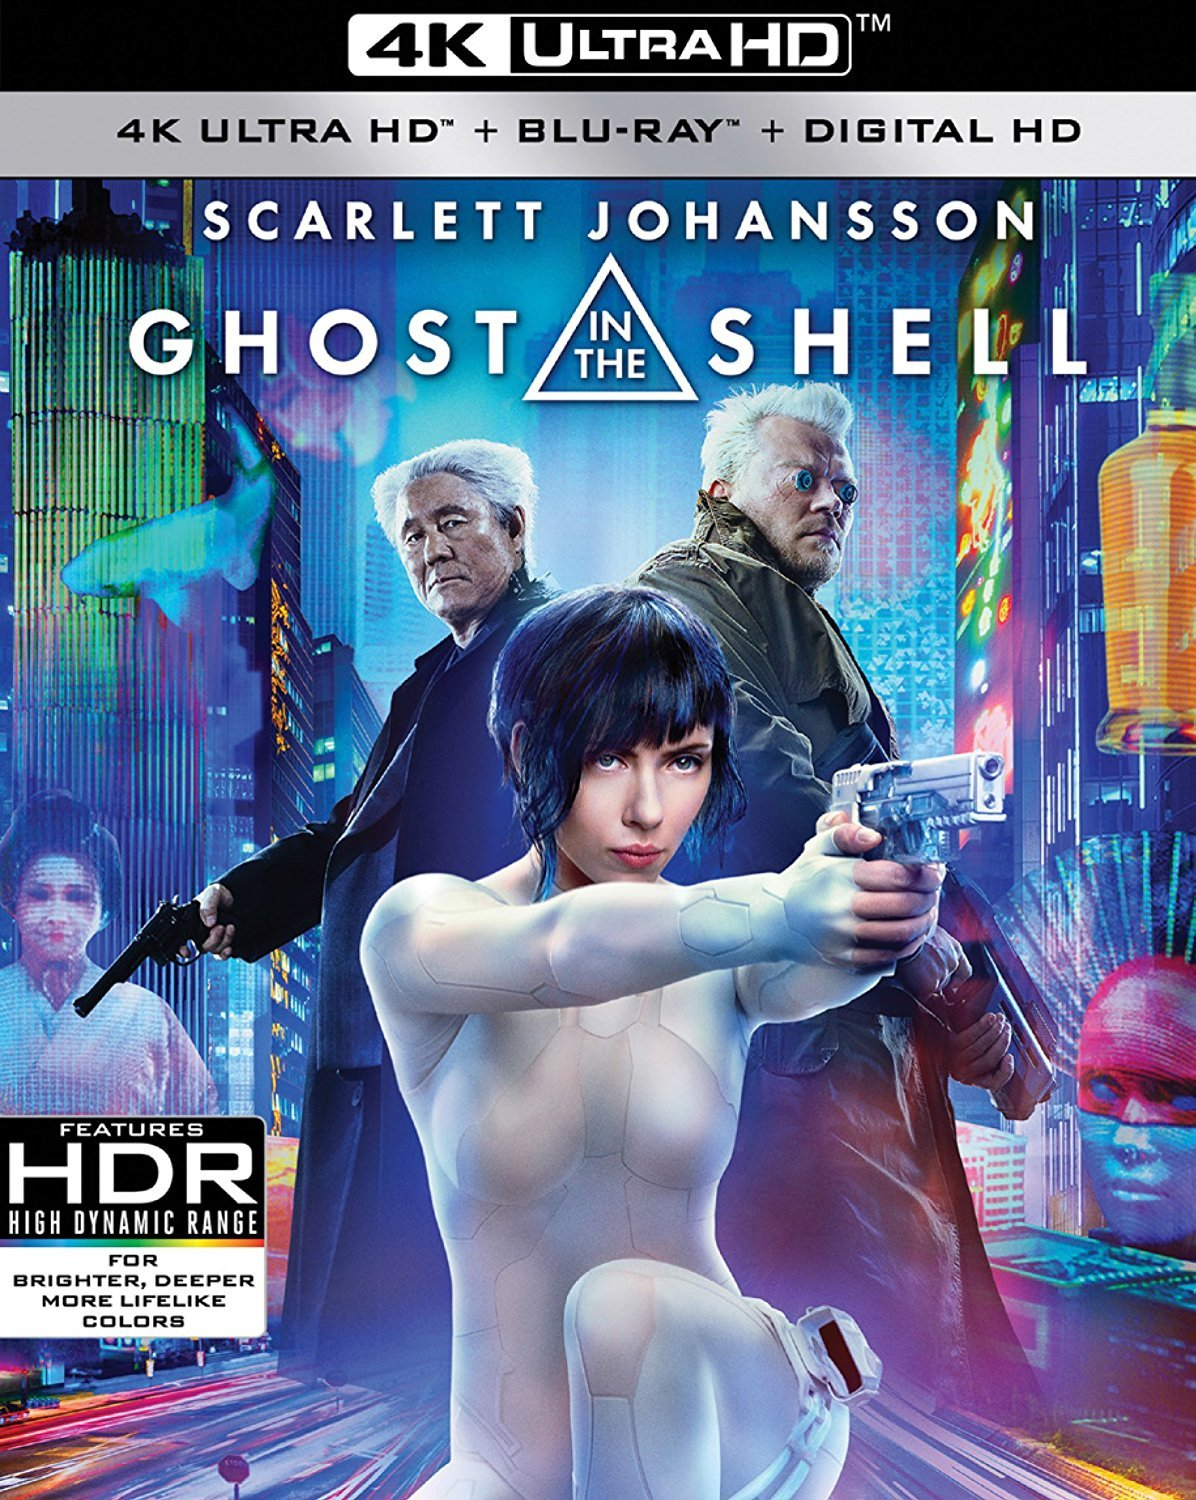 Ghost in the Shell (2017) UHD Ultra HD Blu-ray